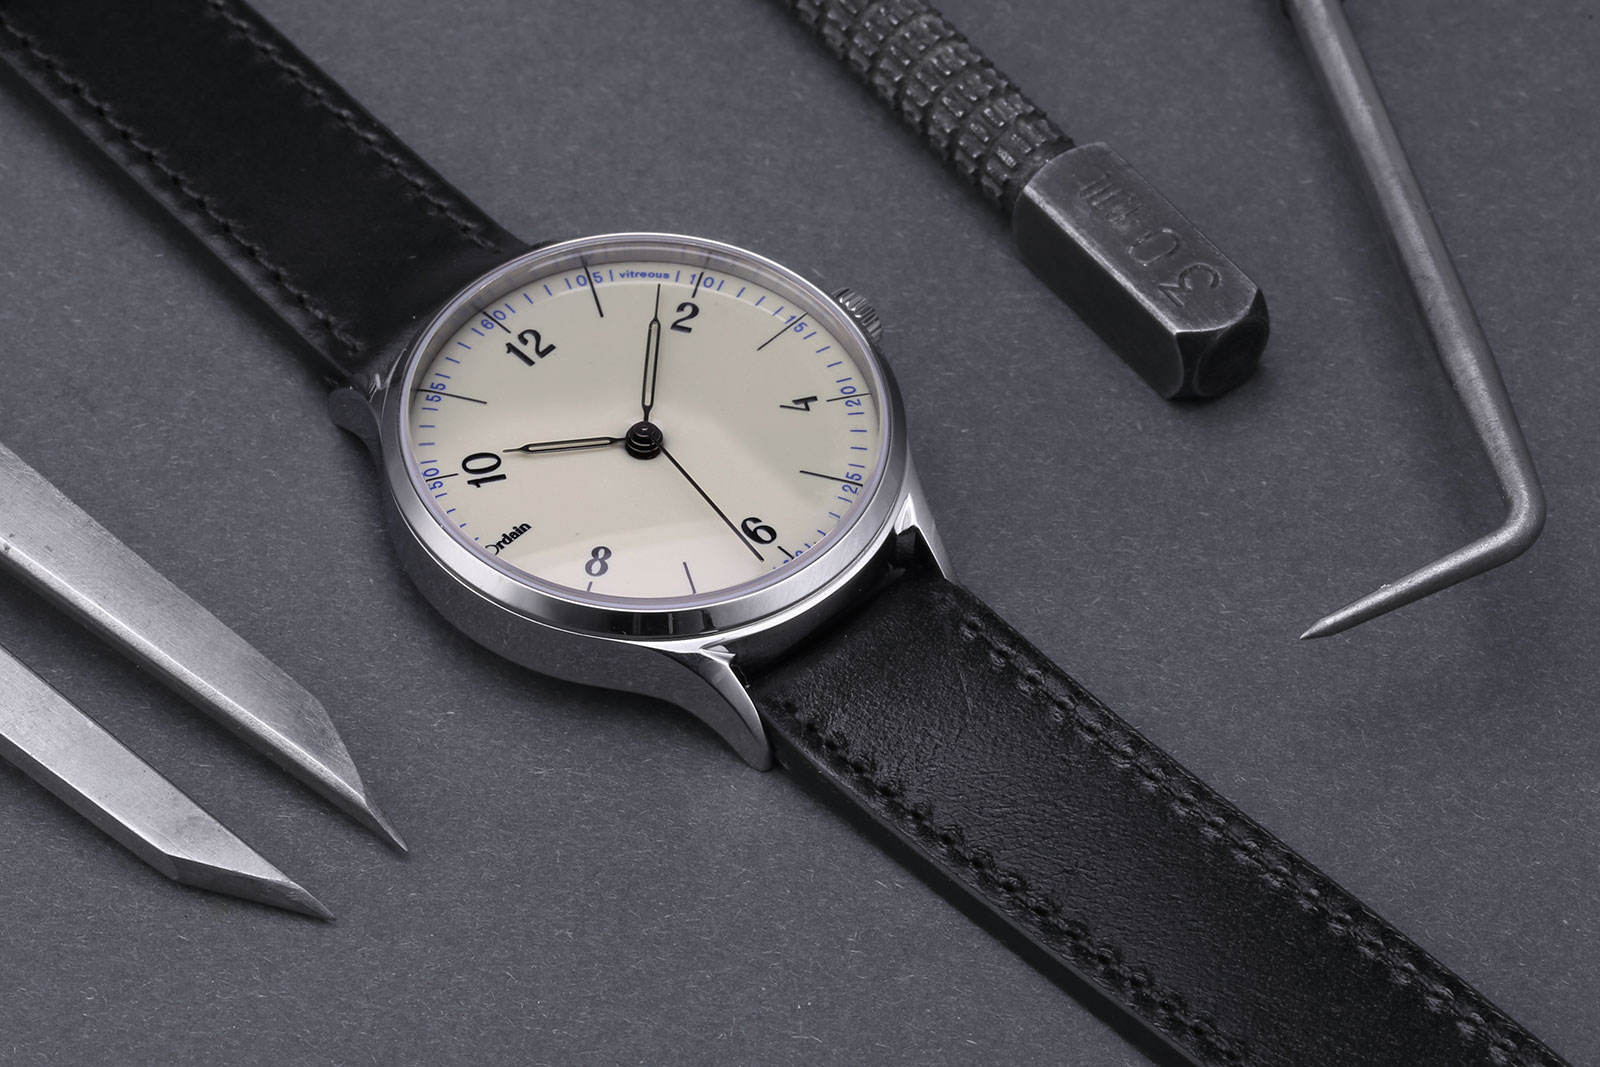 Anordain Model 1 enamel dial watch 10